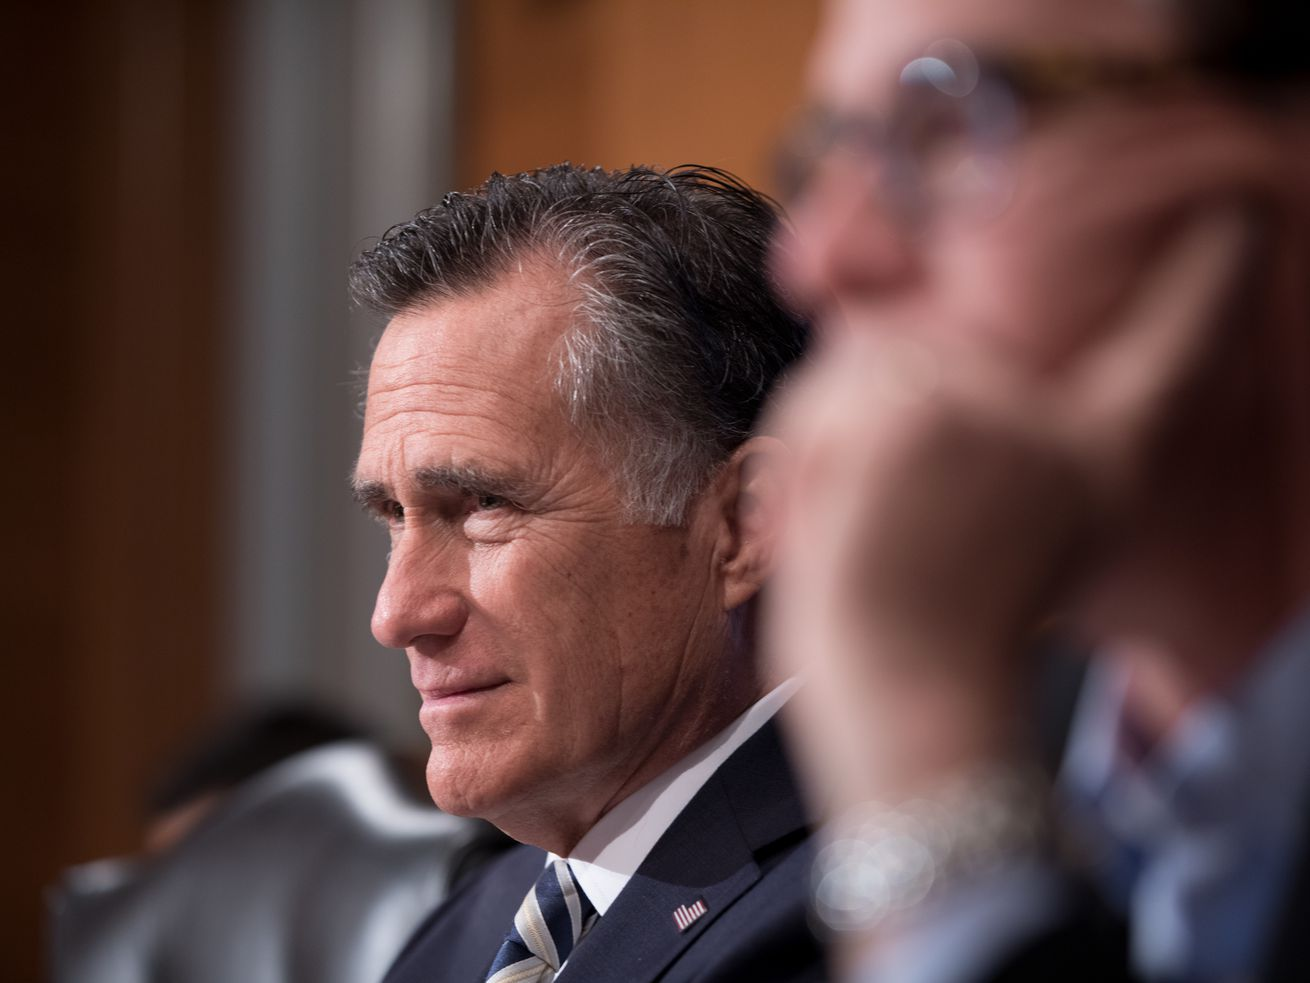 Mitt Romney calls Trump decision to remove U.S. troops from Germany 'grave error'